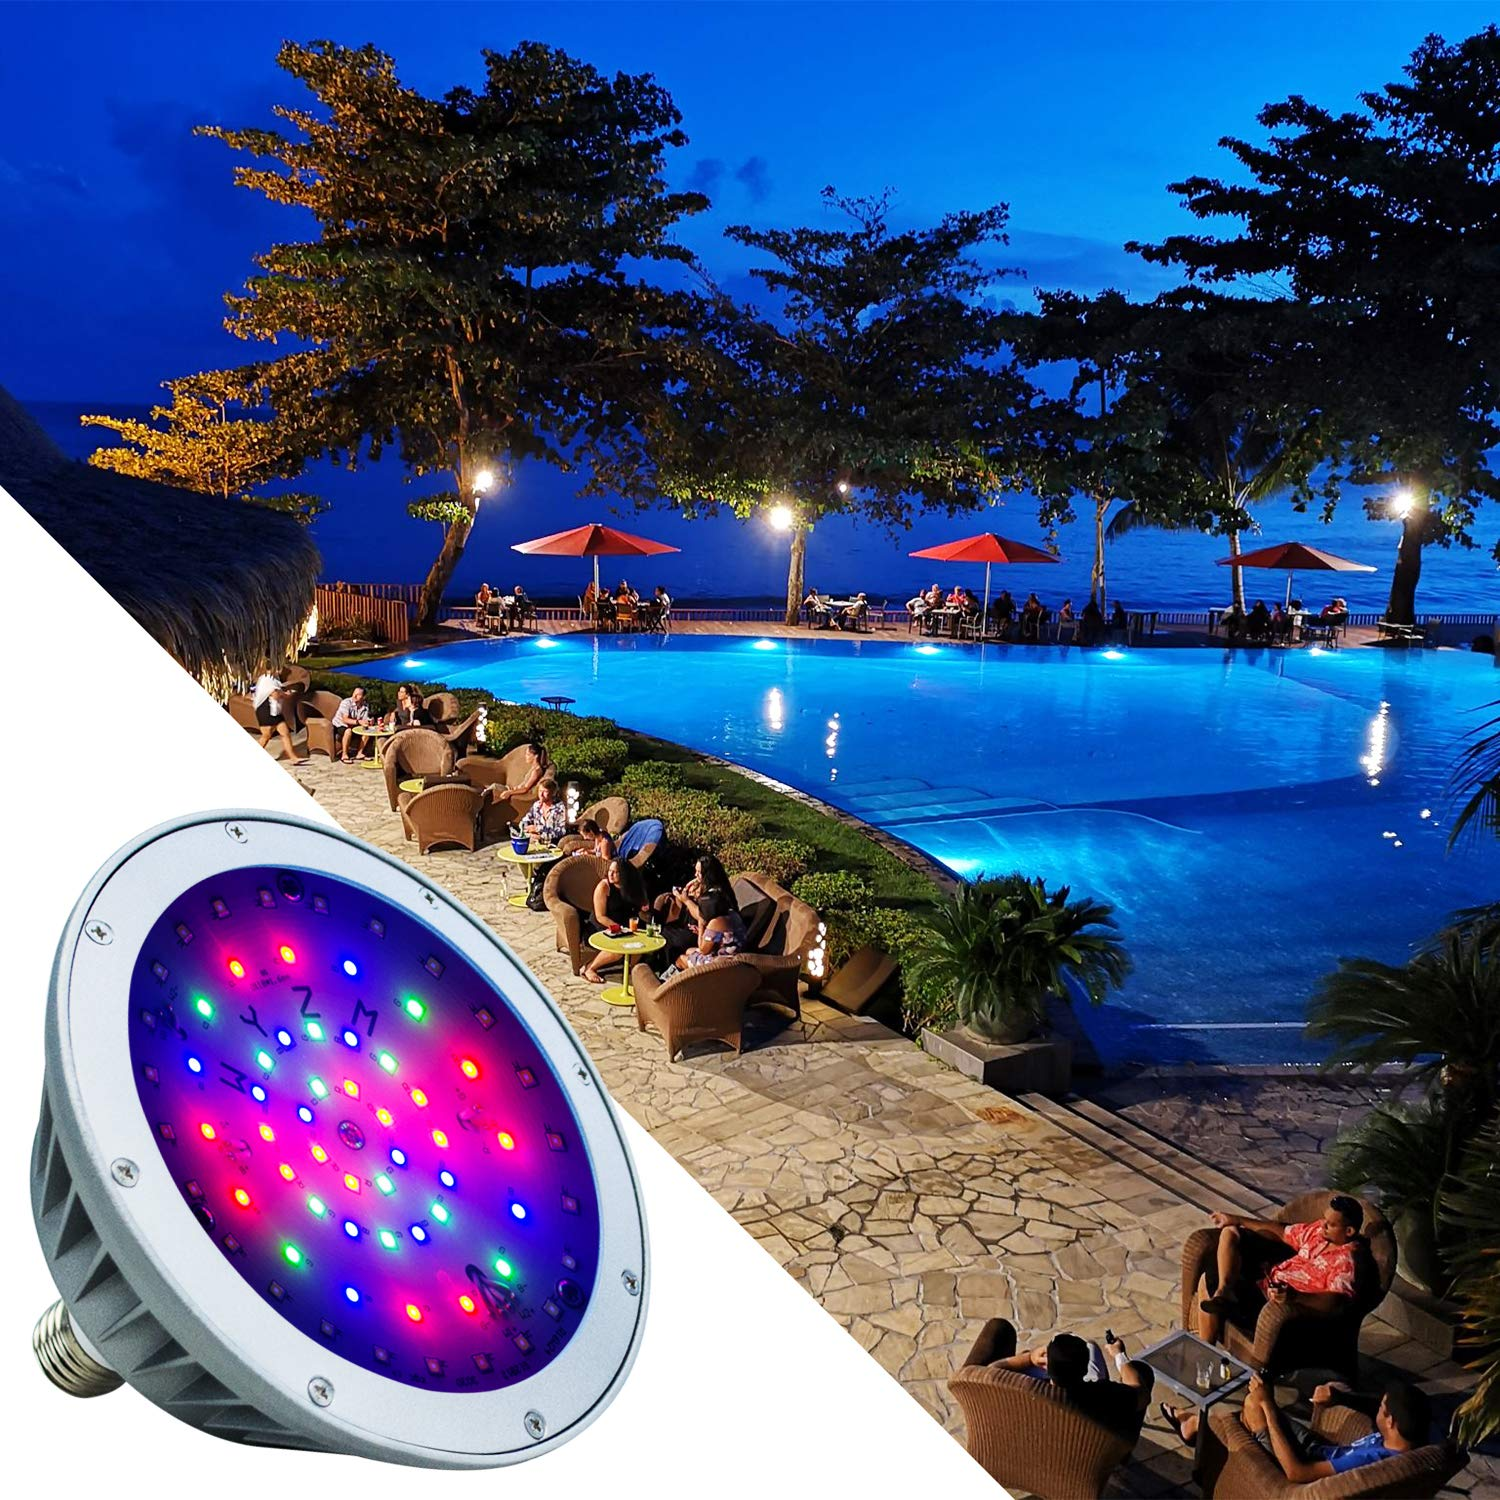 WYZM LED Pool Light Bulb for Inground Swimming Pool,120V 40Watt,IP66 Waterproof,Color Changing,Fit in for Pentair and Hayward Pool Light Fixtures(120V RGB+White) by WYZM (Image #7)